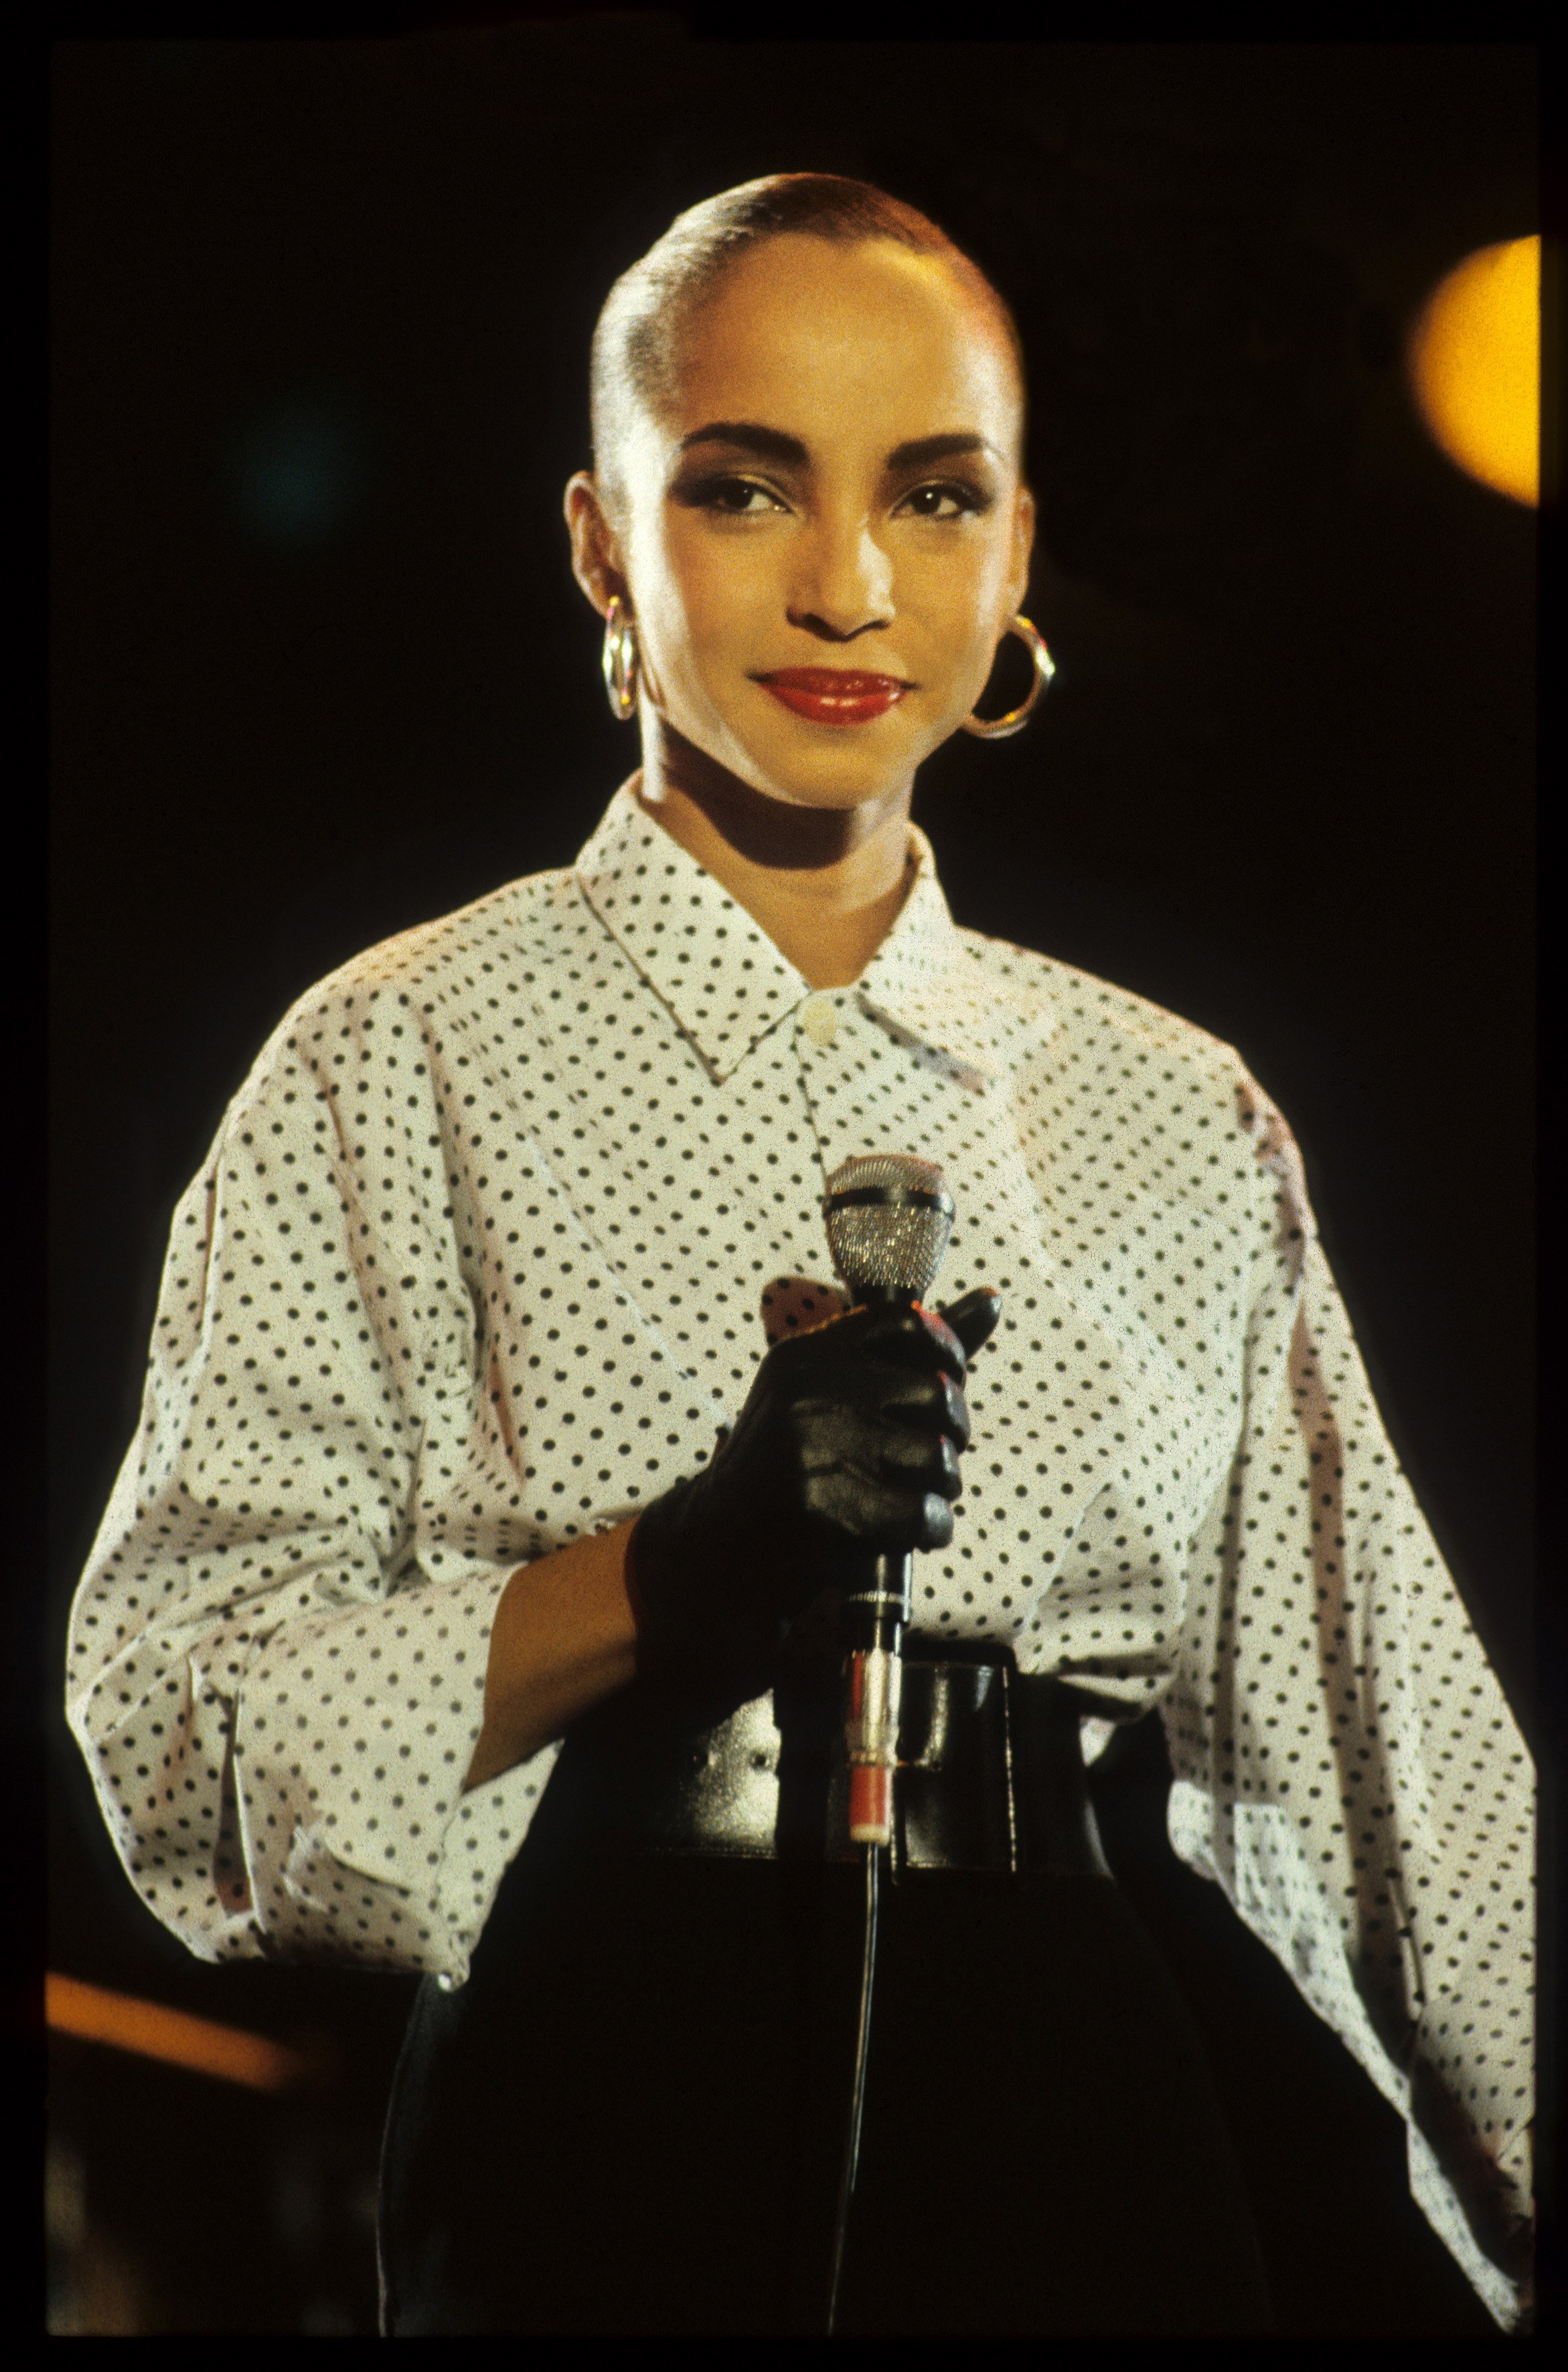 Sade performs on stage at Veronica Rocknight, Ahoy, Rotterdam, Netherlands, 21st September 1984   Photo: Getty Images